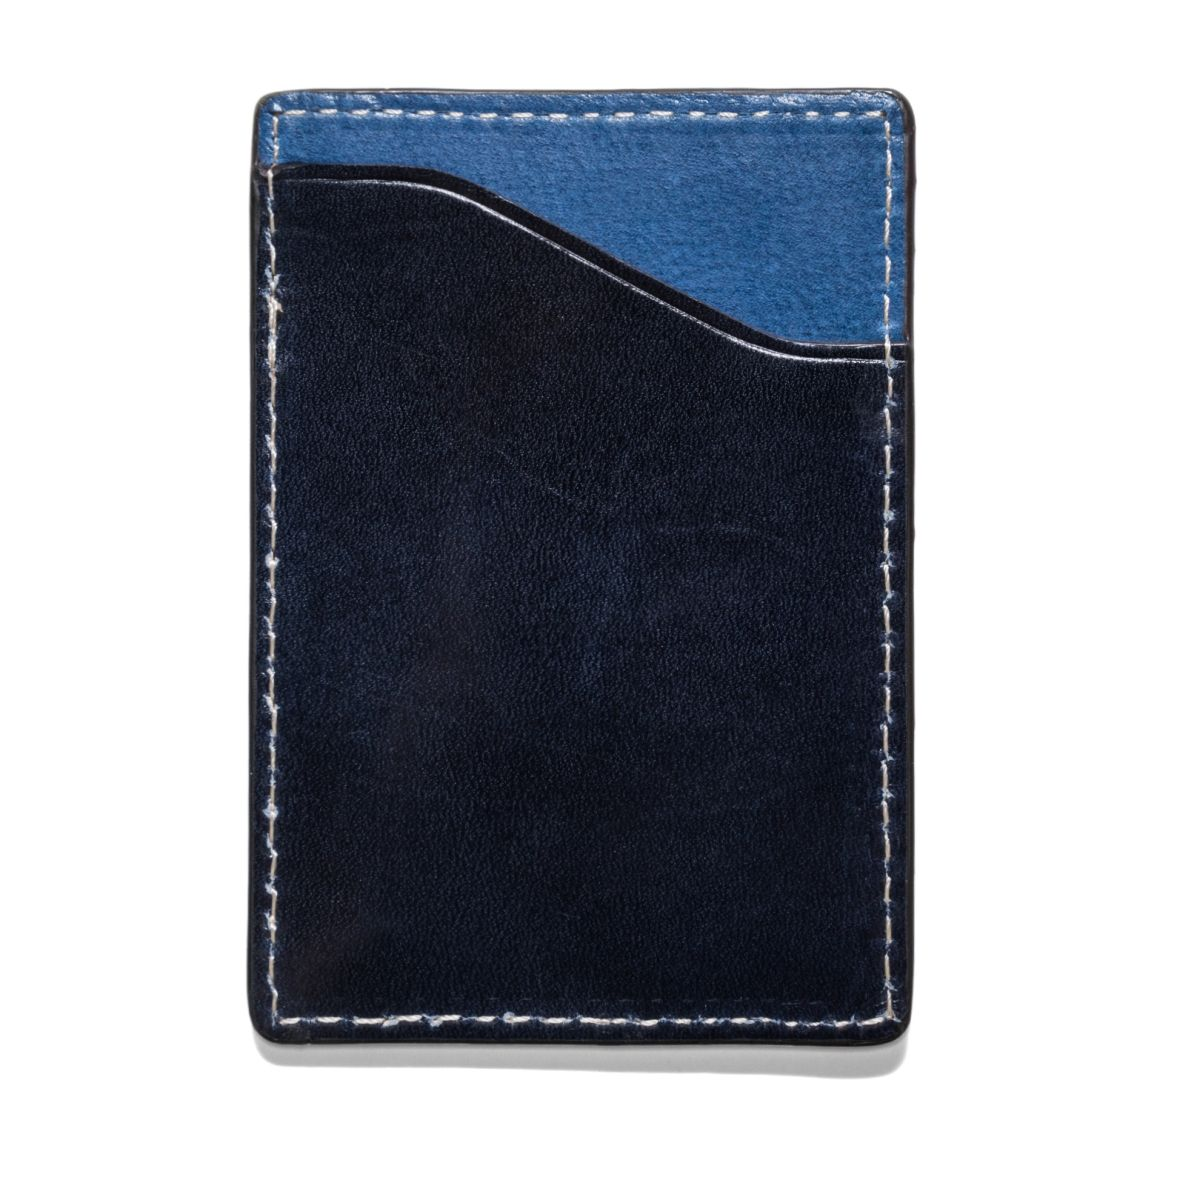 J.FOLD FLAT STASH Leather Wallet - Dark Navy